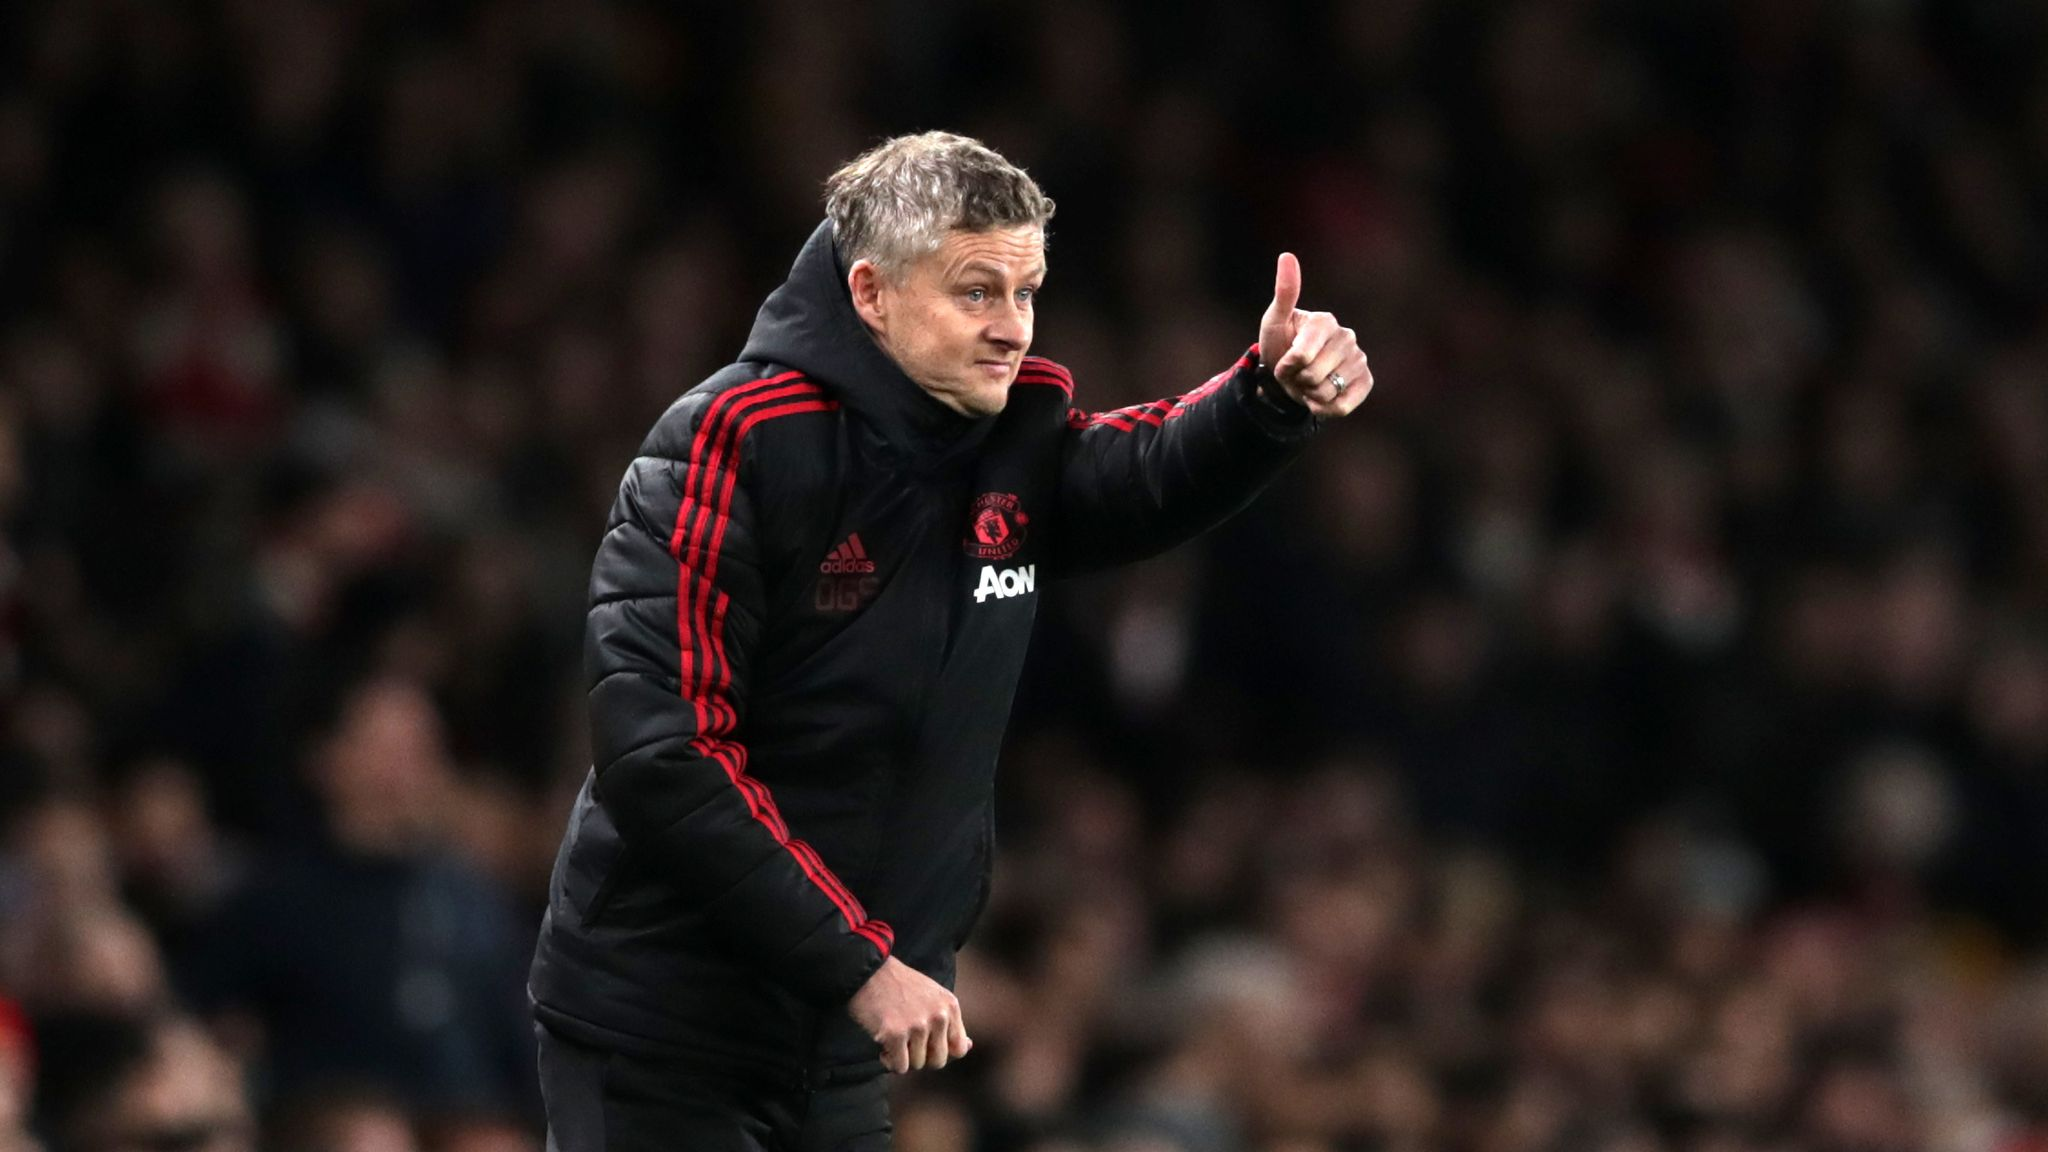 Bayern should take a warning from Manchester United